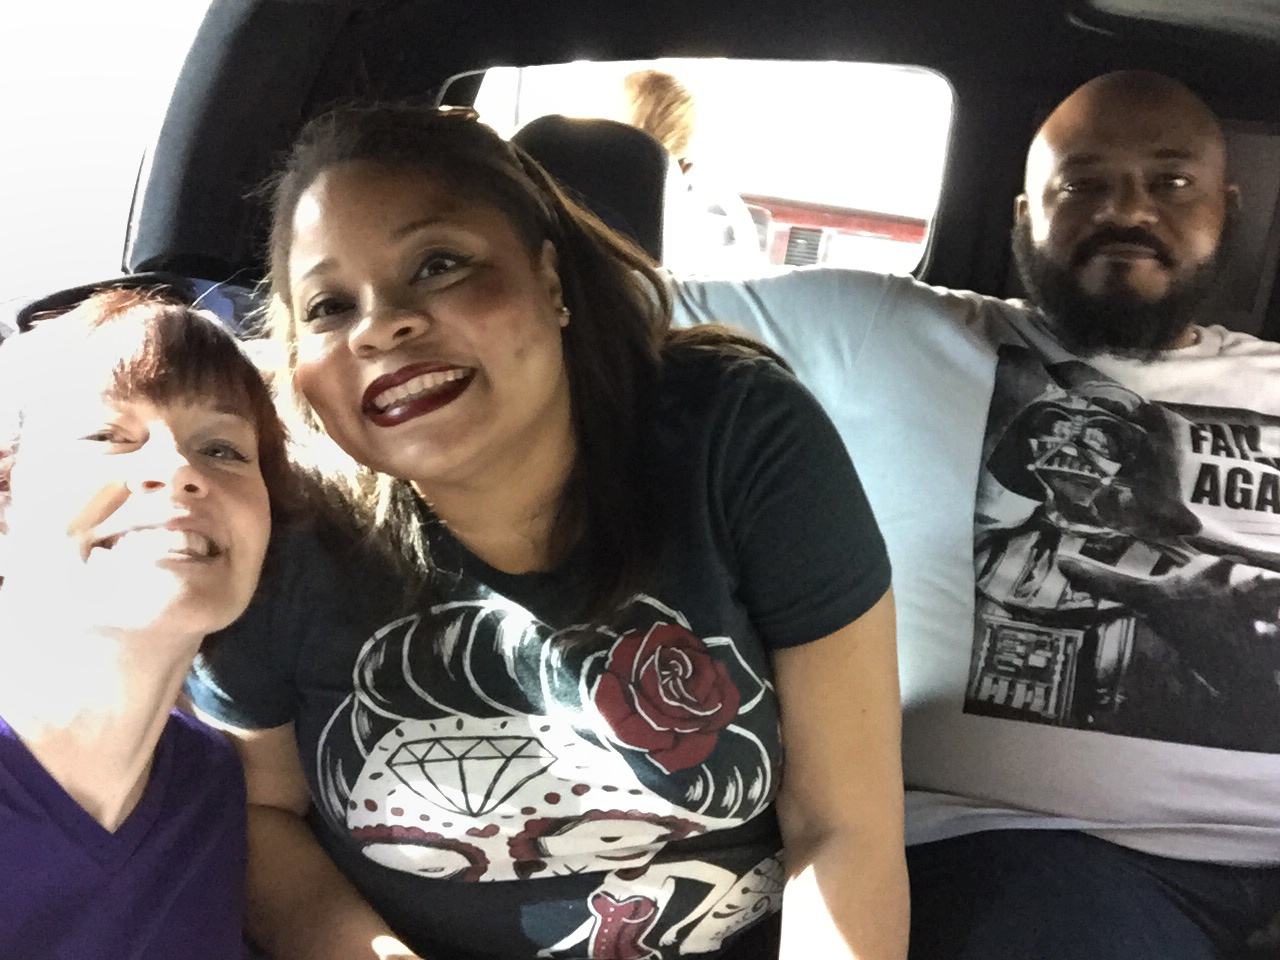 Cruising in style to the Las Vegas EAT restaurant.  Left to right: Mindy, Sandy, Mike